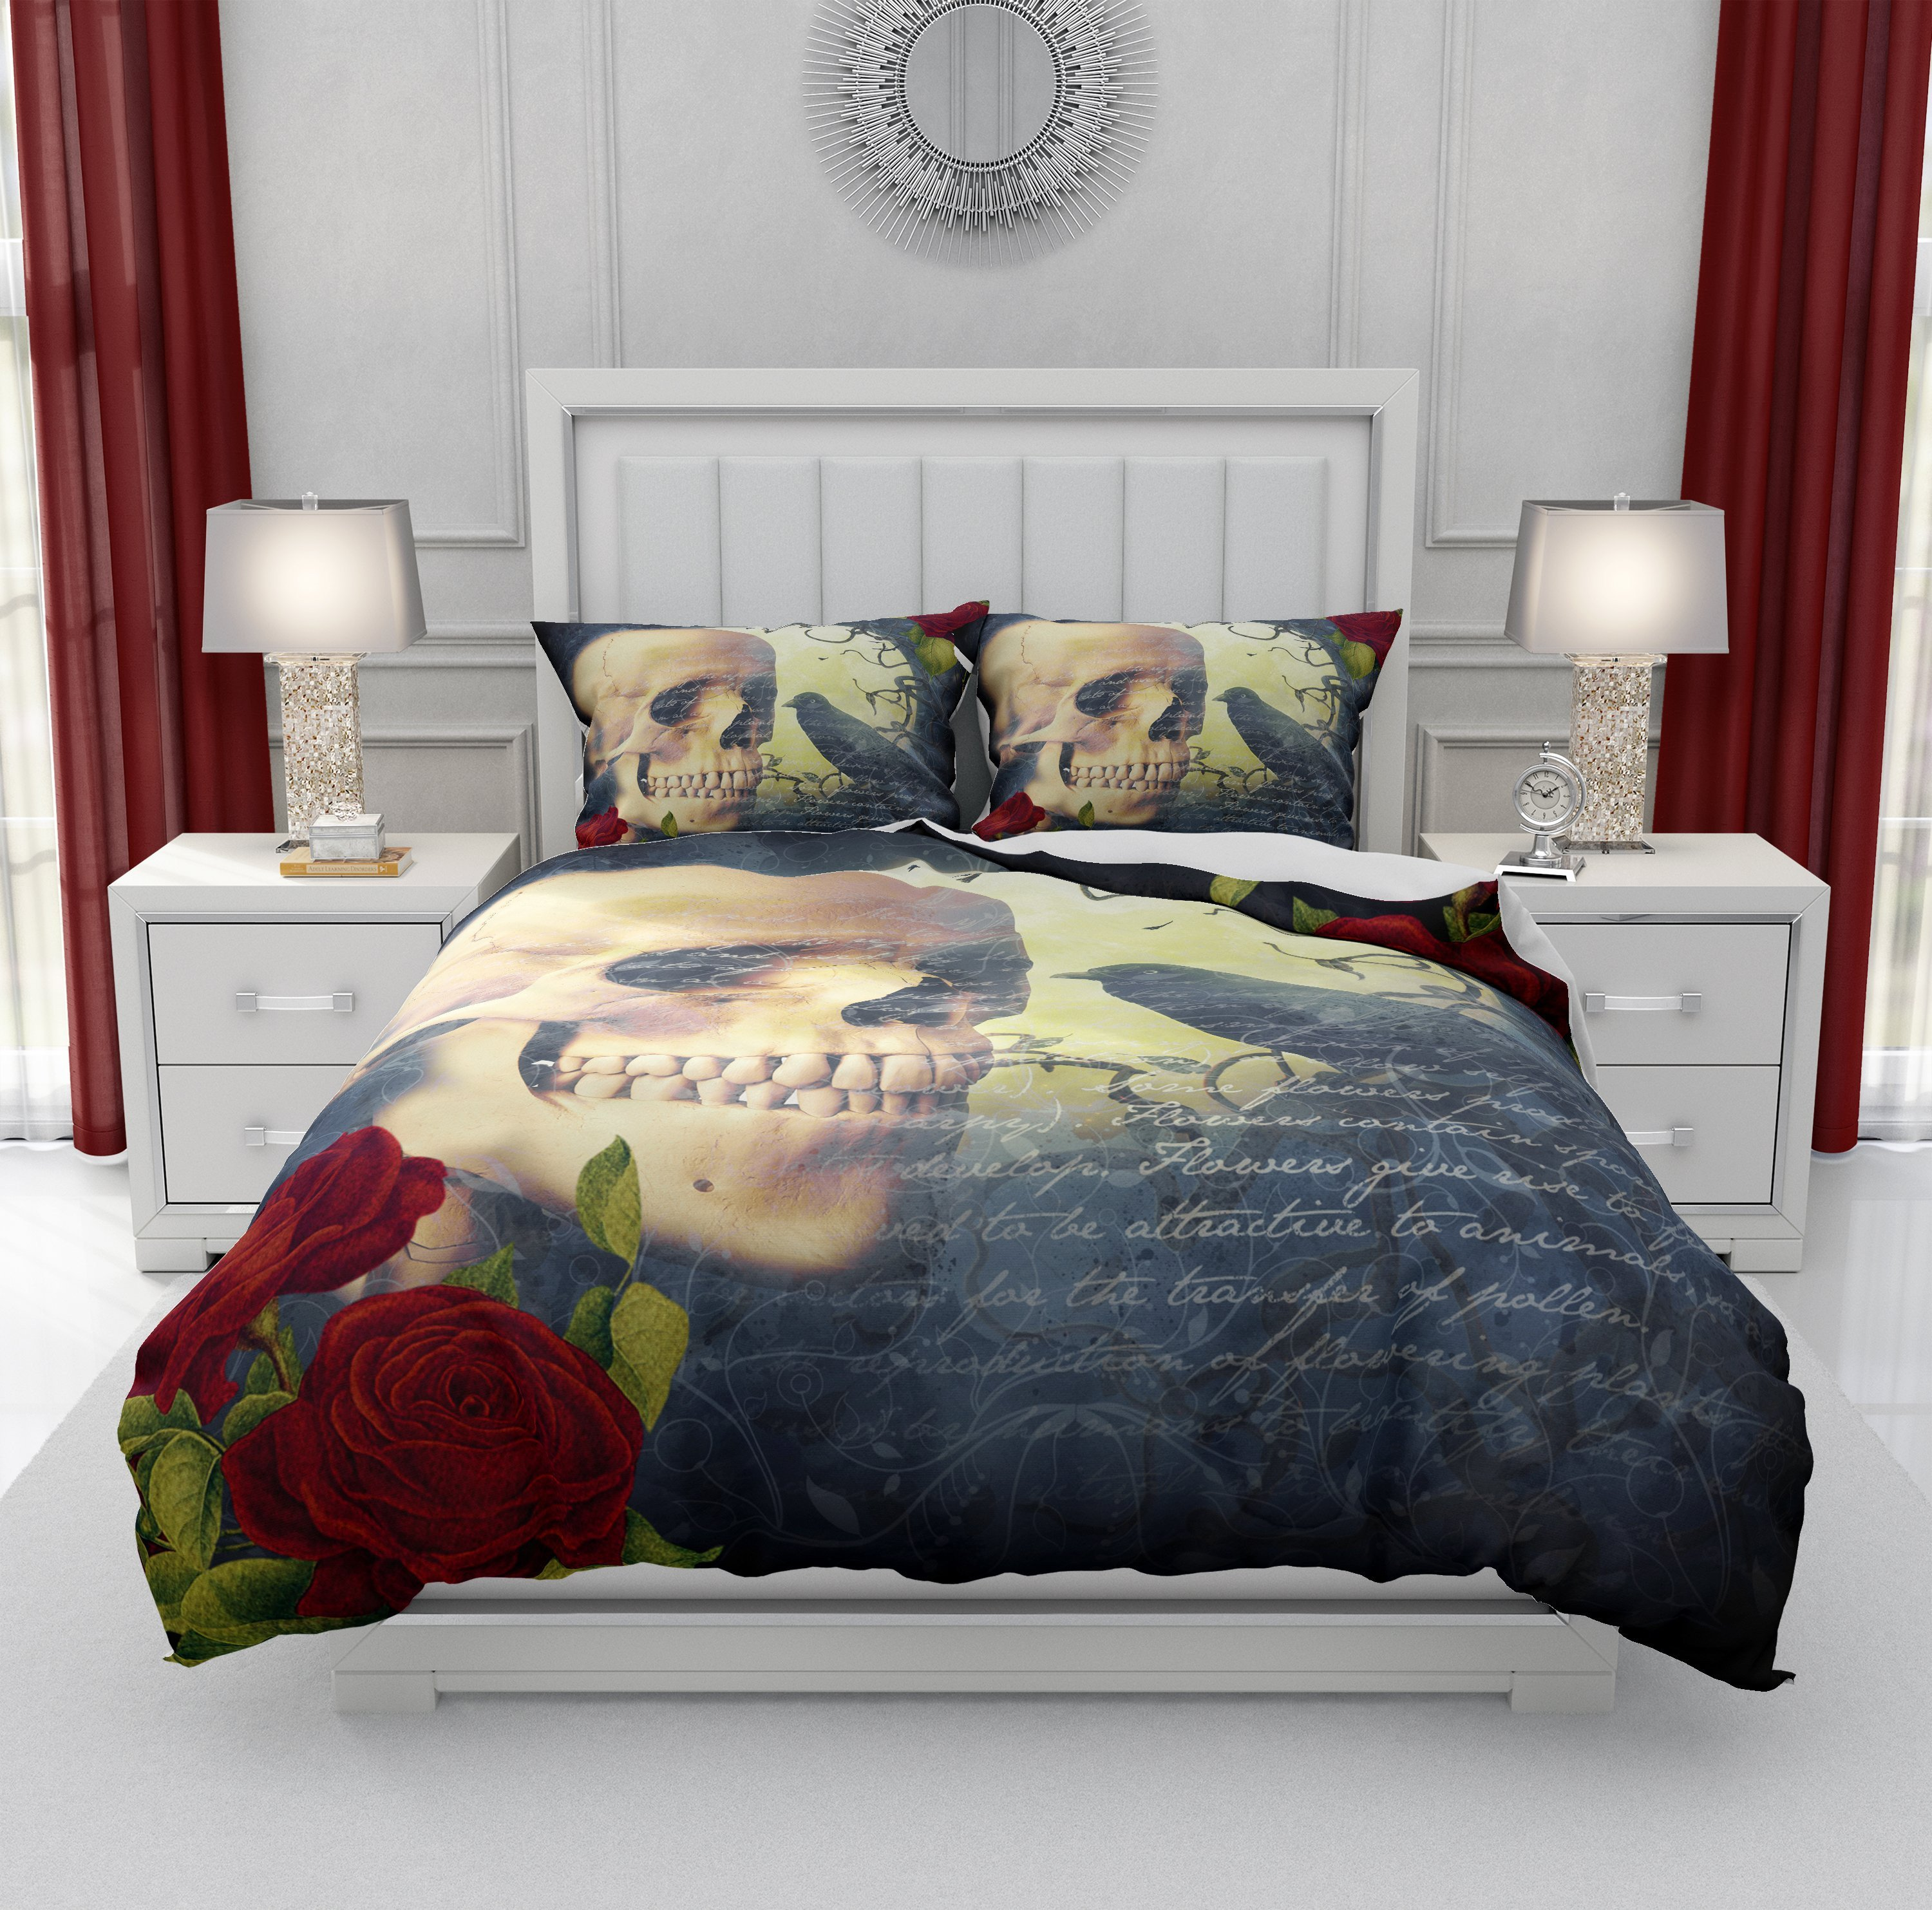 Gothic Bedroom Furniture for Sale Lovely Crow Speaks Gothic Skull Bedding